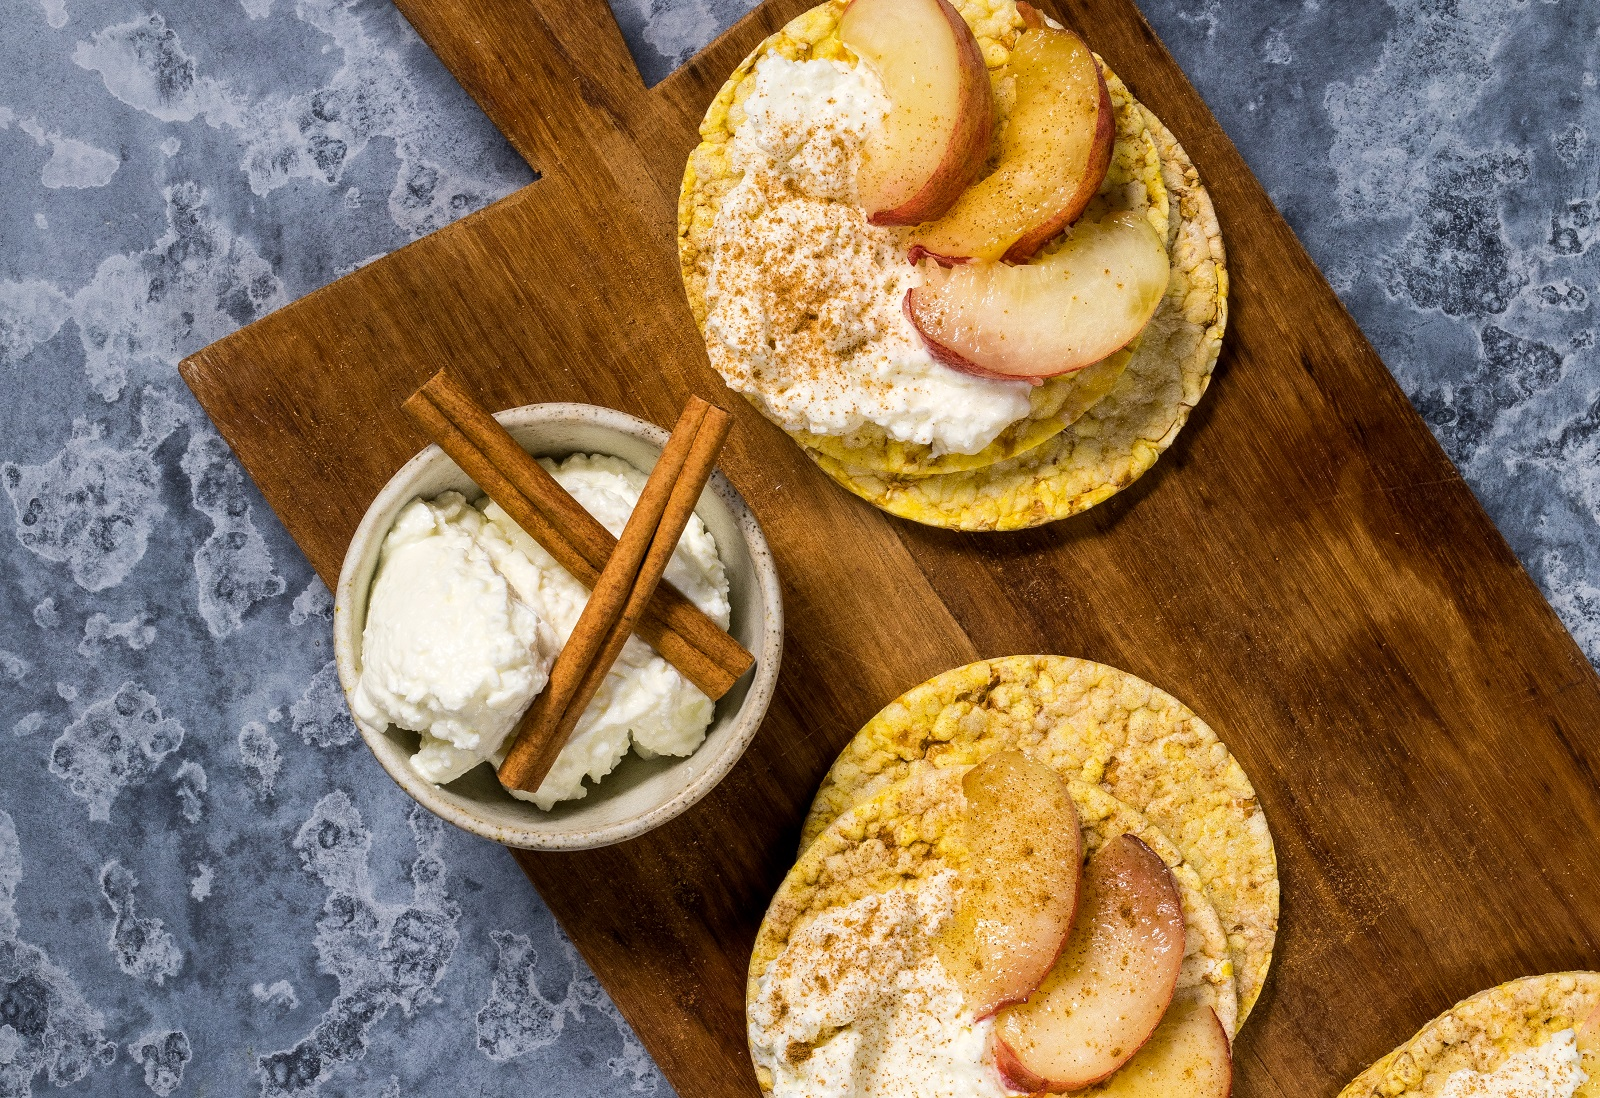 Cottage cheese, white peach and cinnamon of CORN THINS slices for breakfast